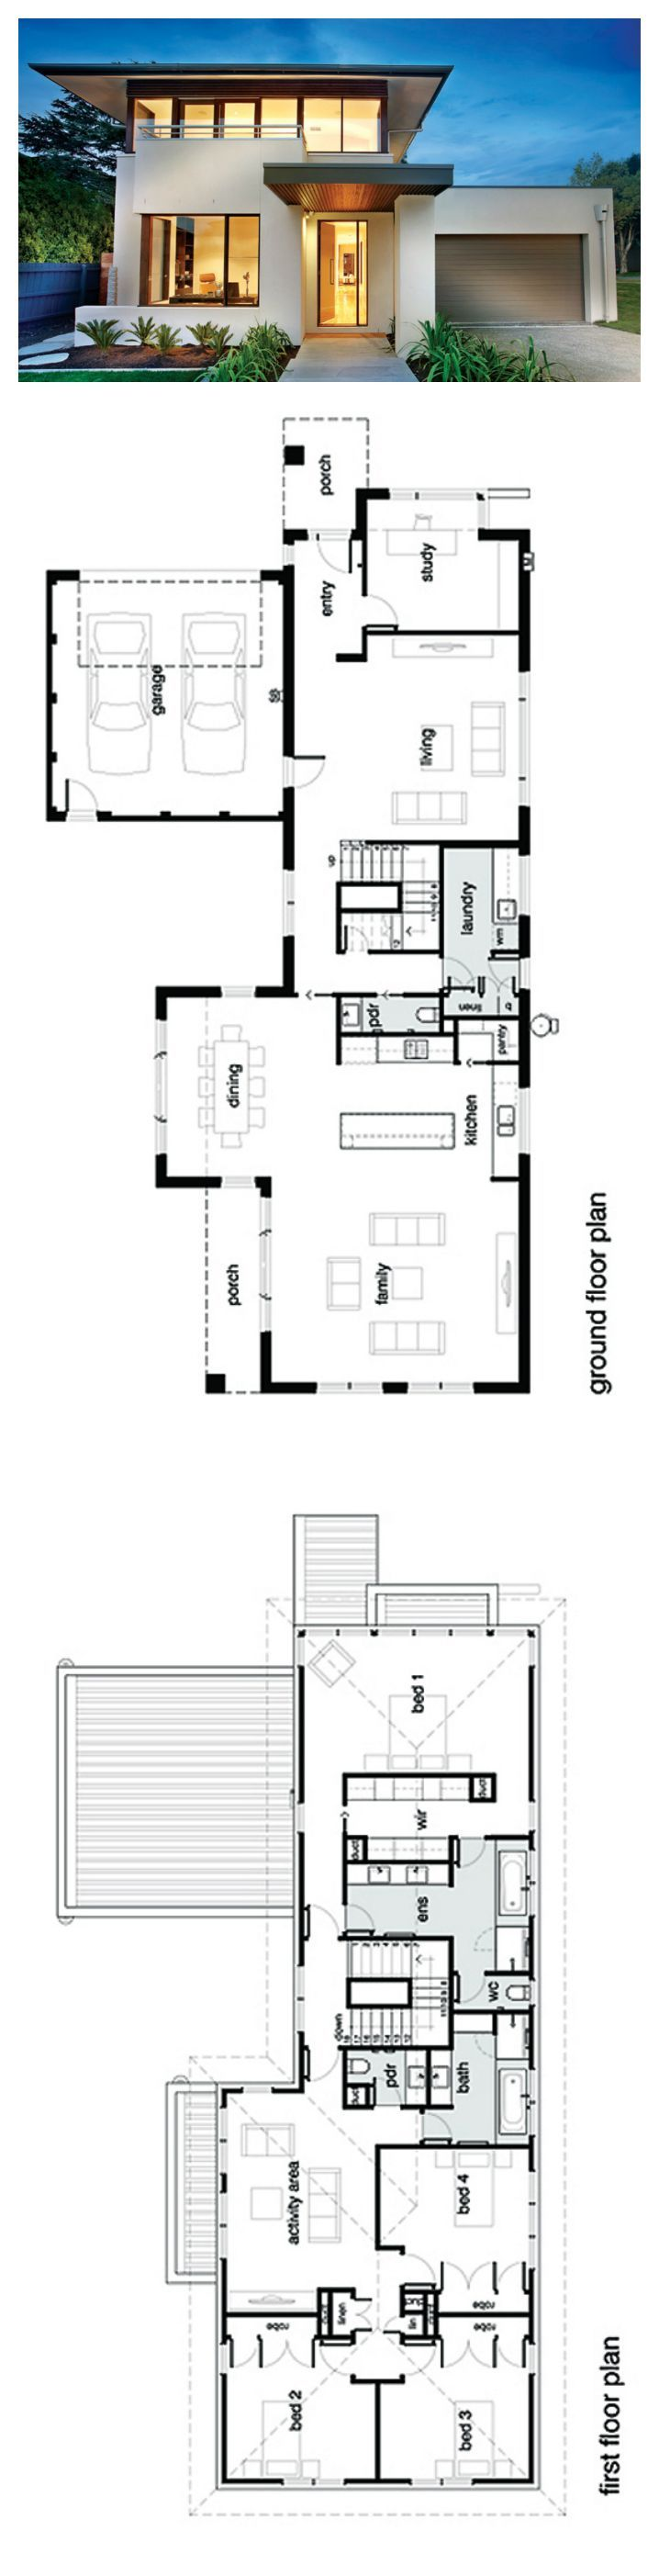 Best 25 modern house plans ideas on pinterest Modern house plans free